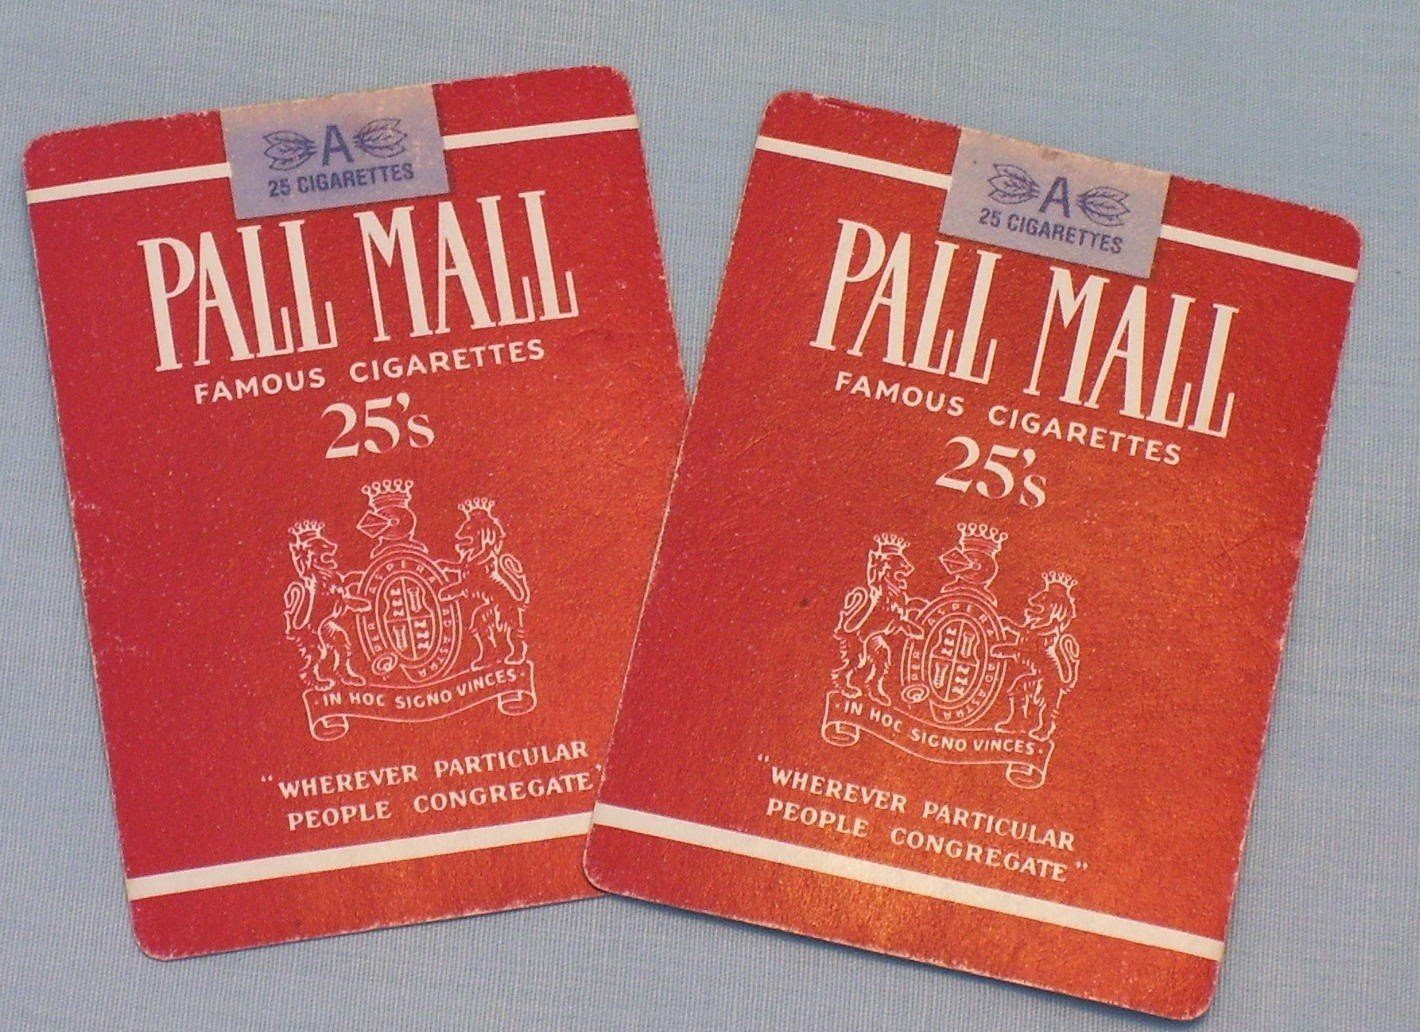 Printable Cigarette Coupons 2019: Free Pall Mall Cigarette Coupons - Free Pack Of Cigarettes Printable Coupon